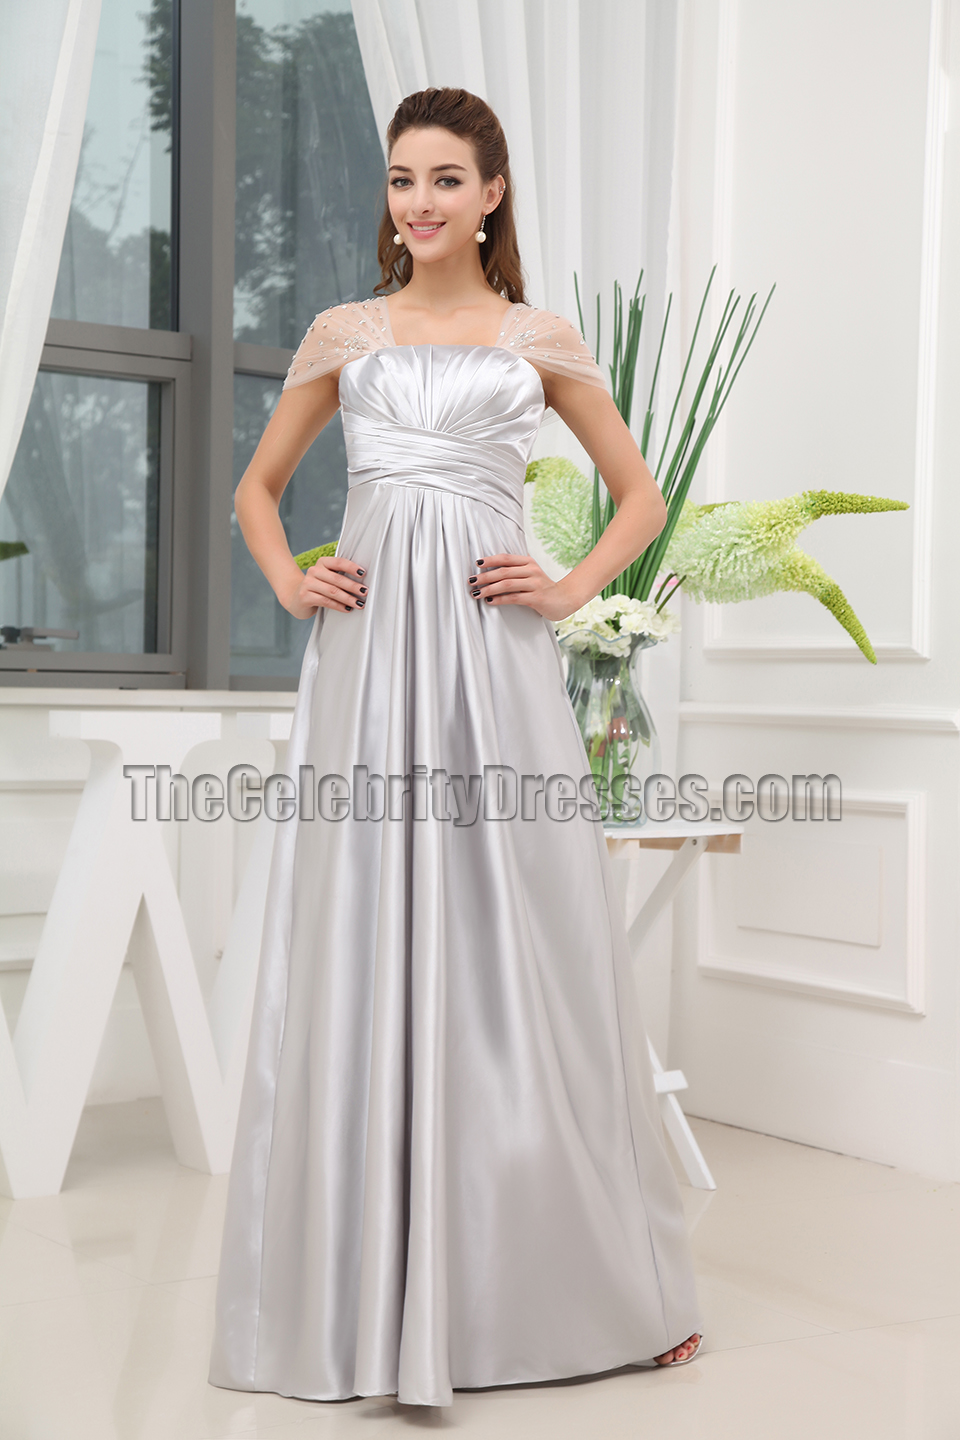 Silver Cap Sleeves Evening Gowns Prom Bridesmaid Dresses ...